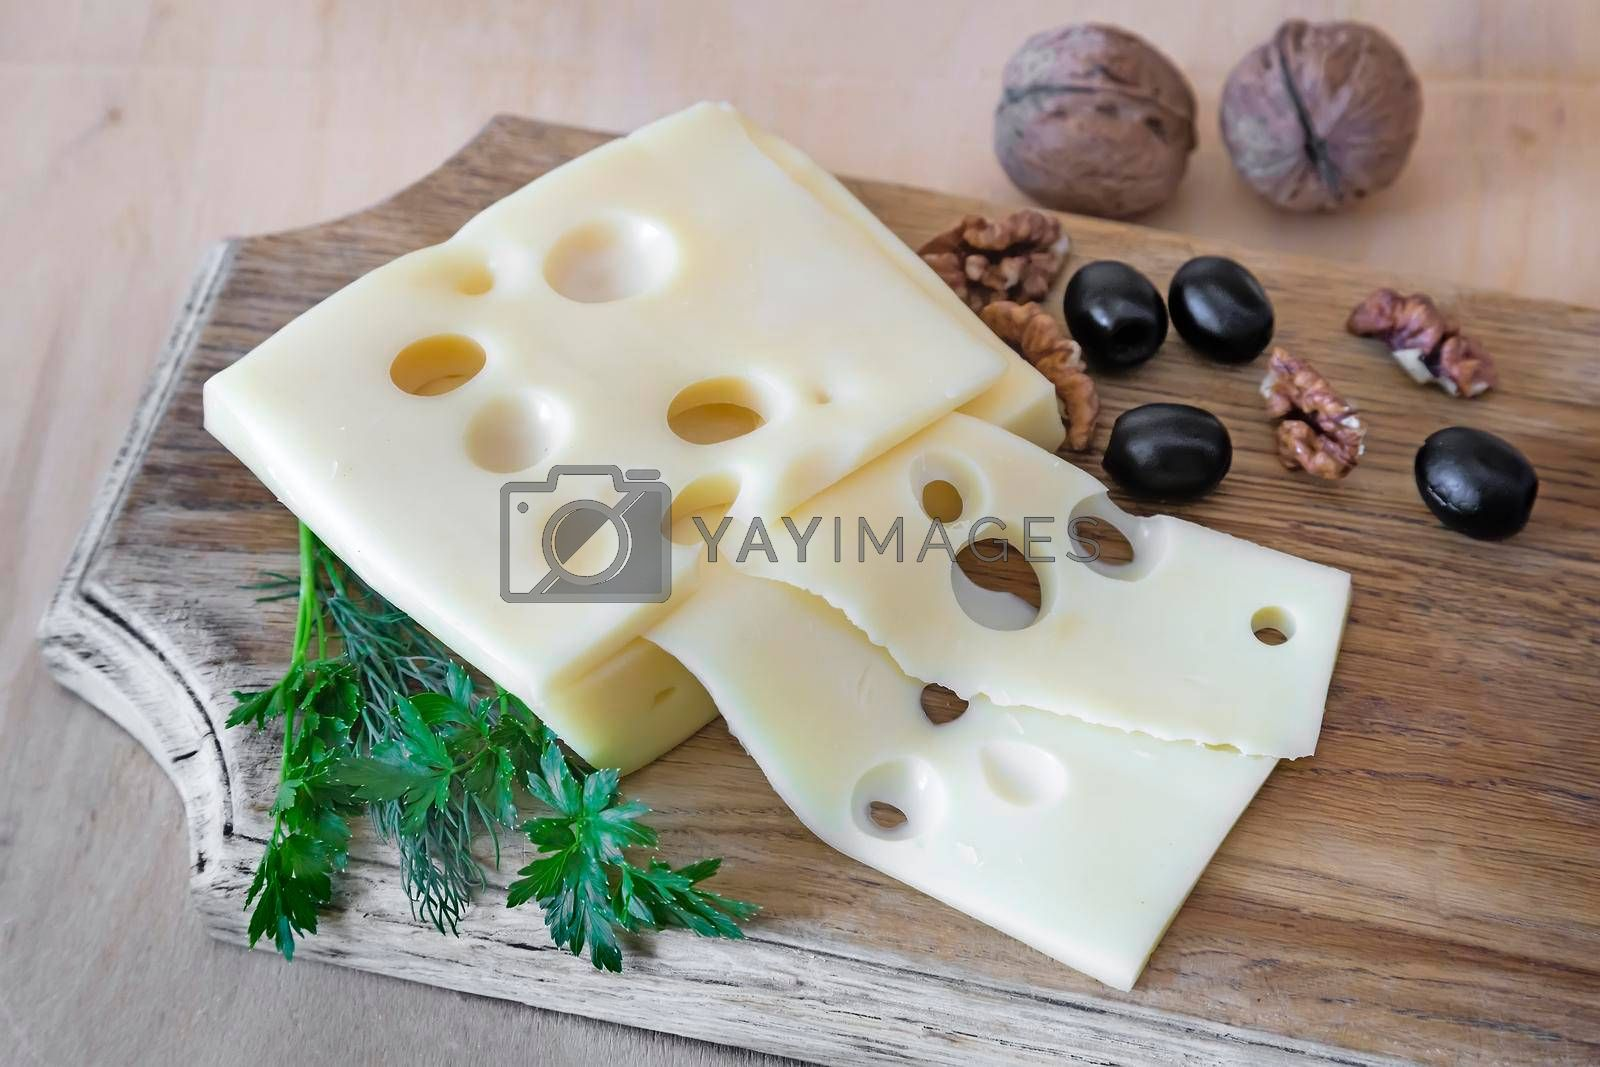 On the table on a cutting Board lies with sliced cheese, walnuts and olives.